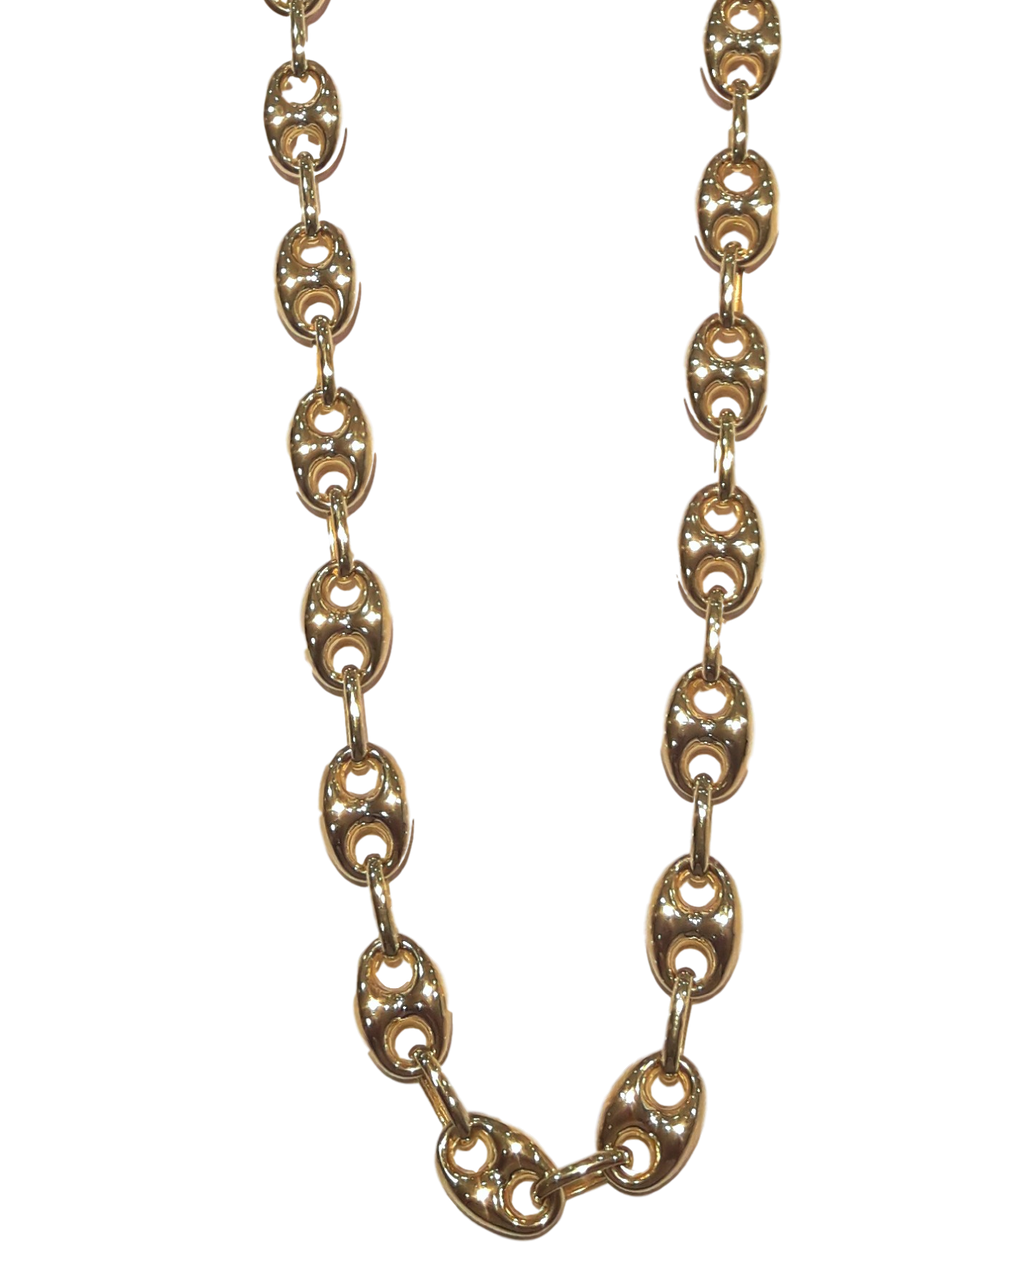 14K Yellow Gold Puff Gucci Necklace  10135721